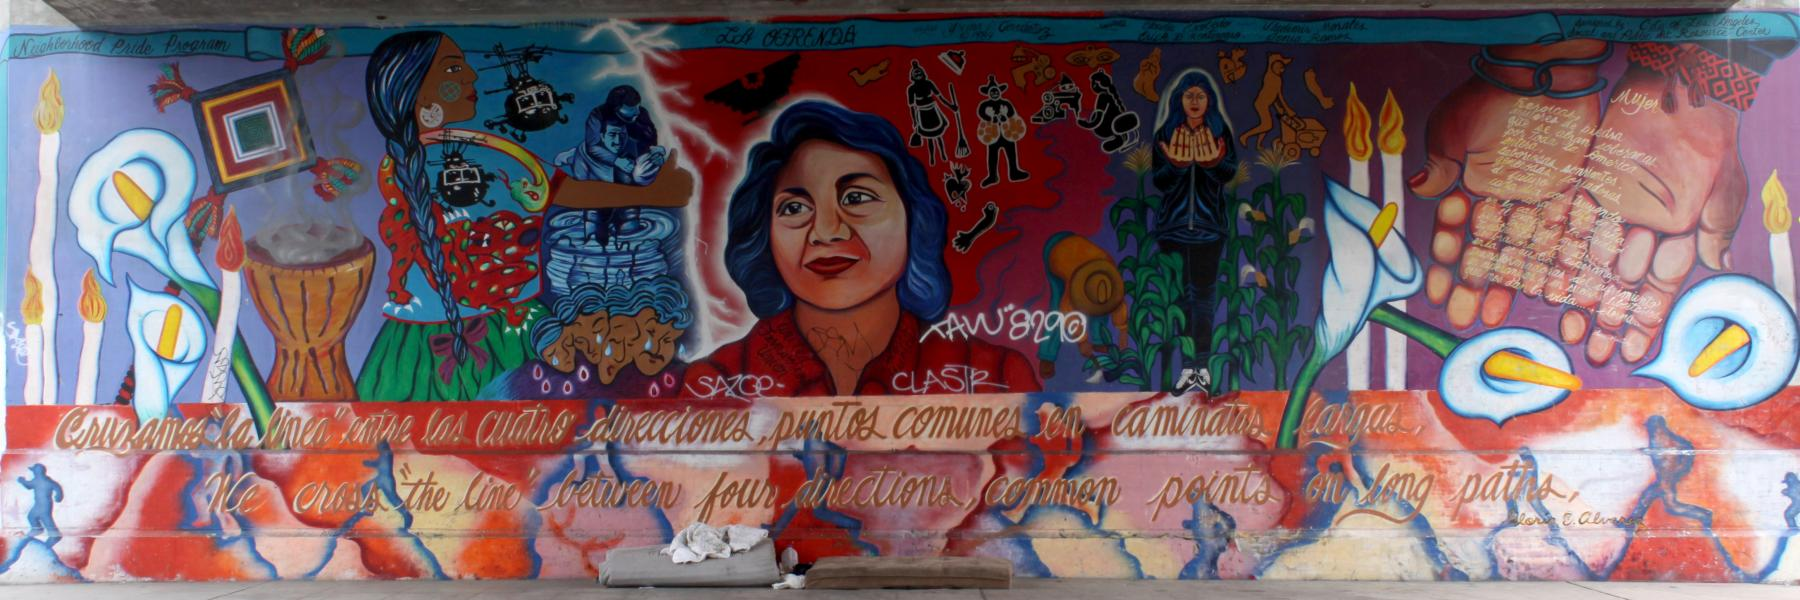 Indigenism in the Mexican Mural Movement